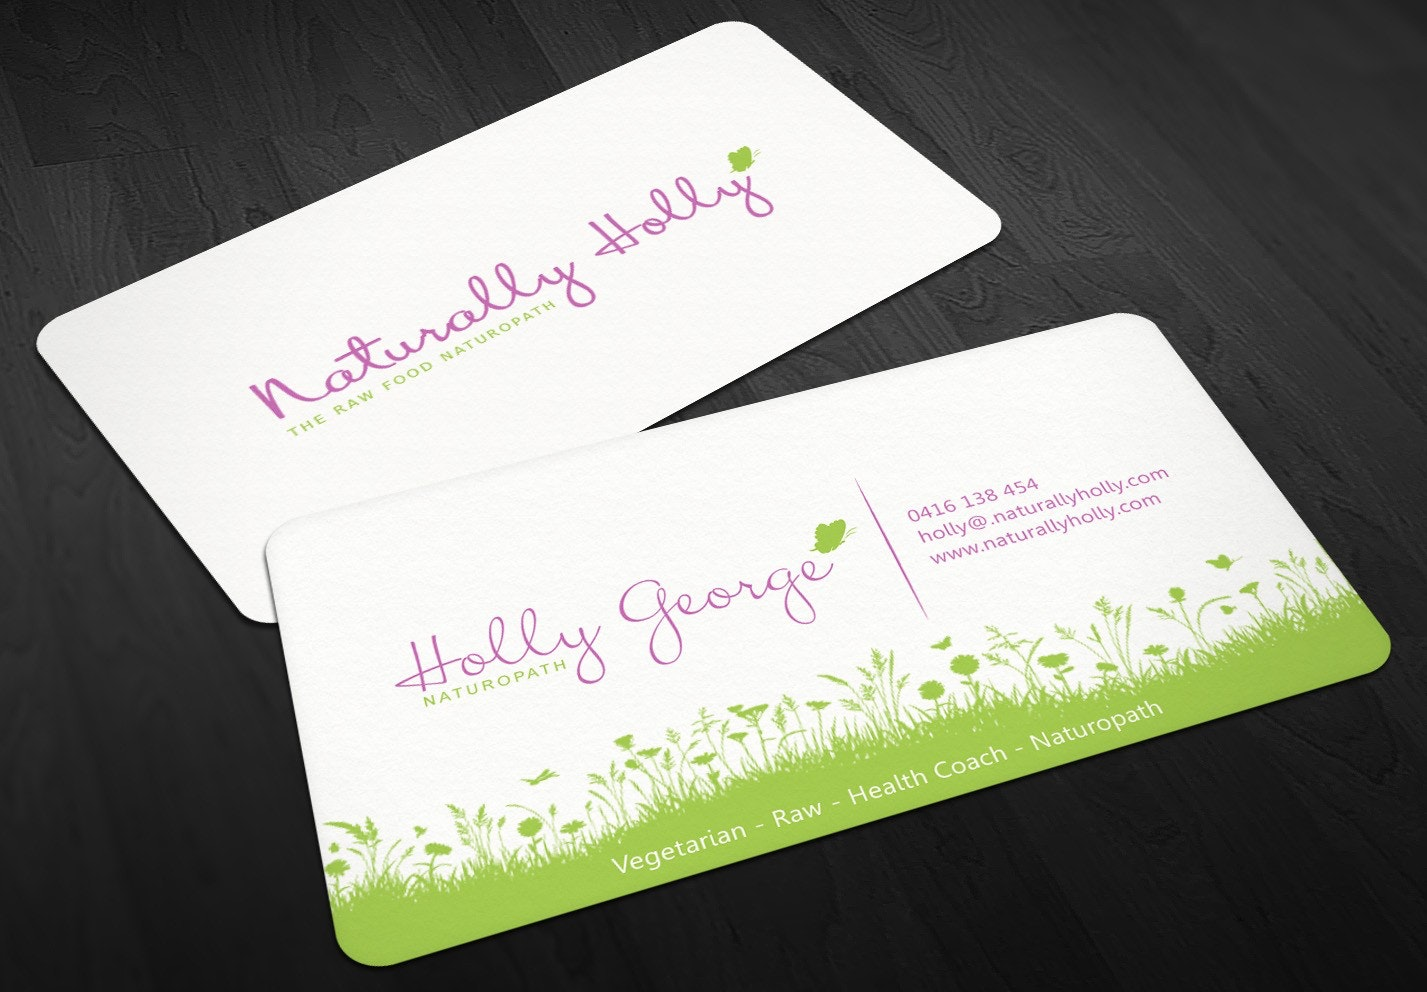 Holly George business card